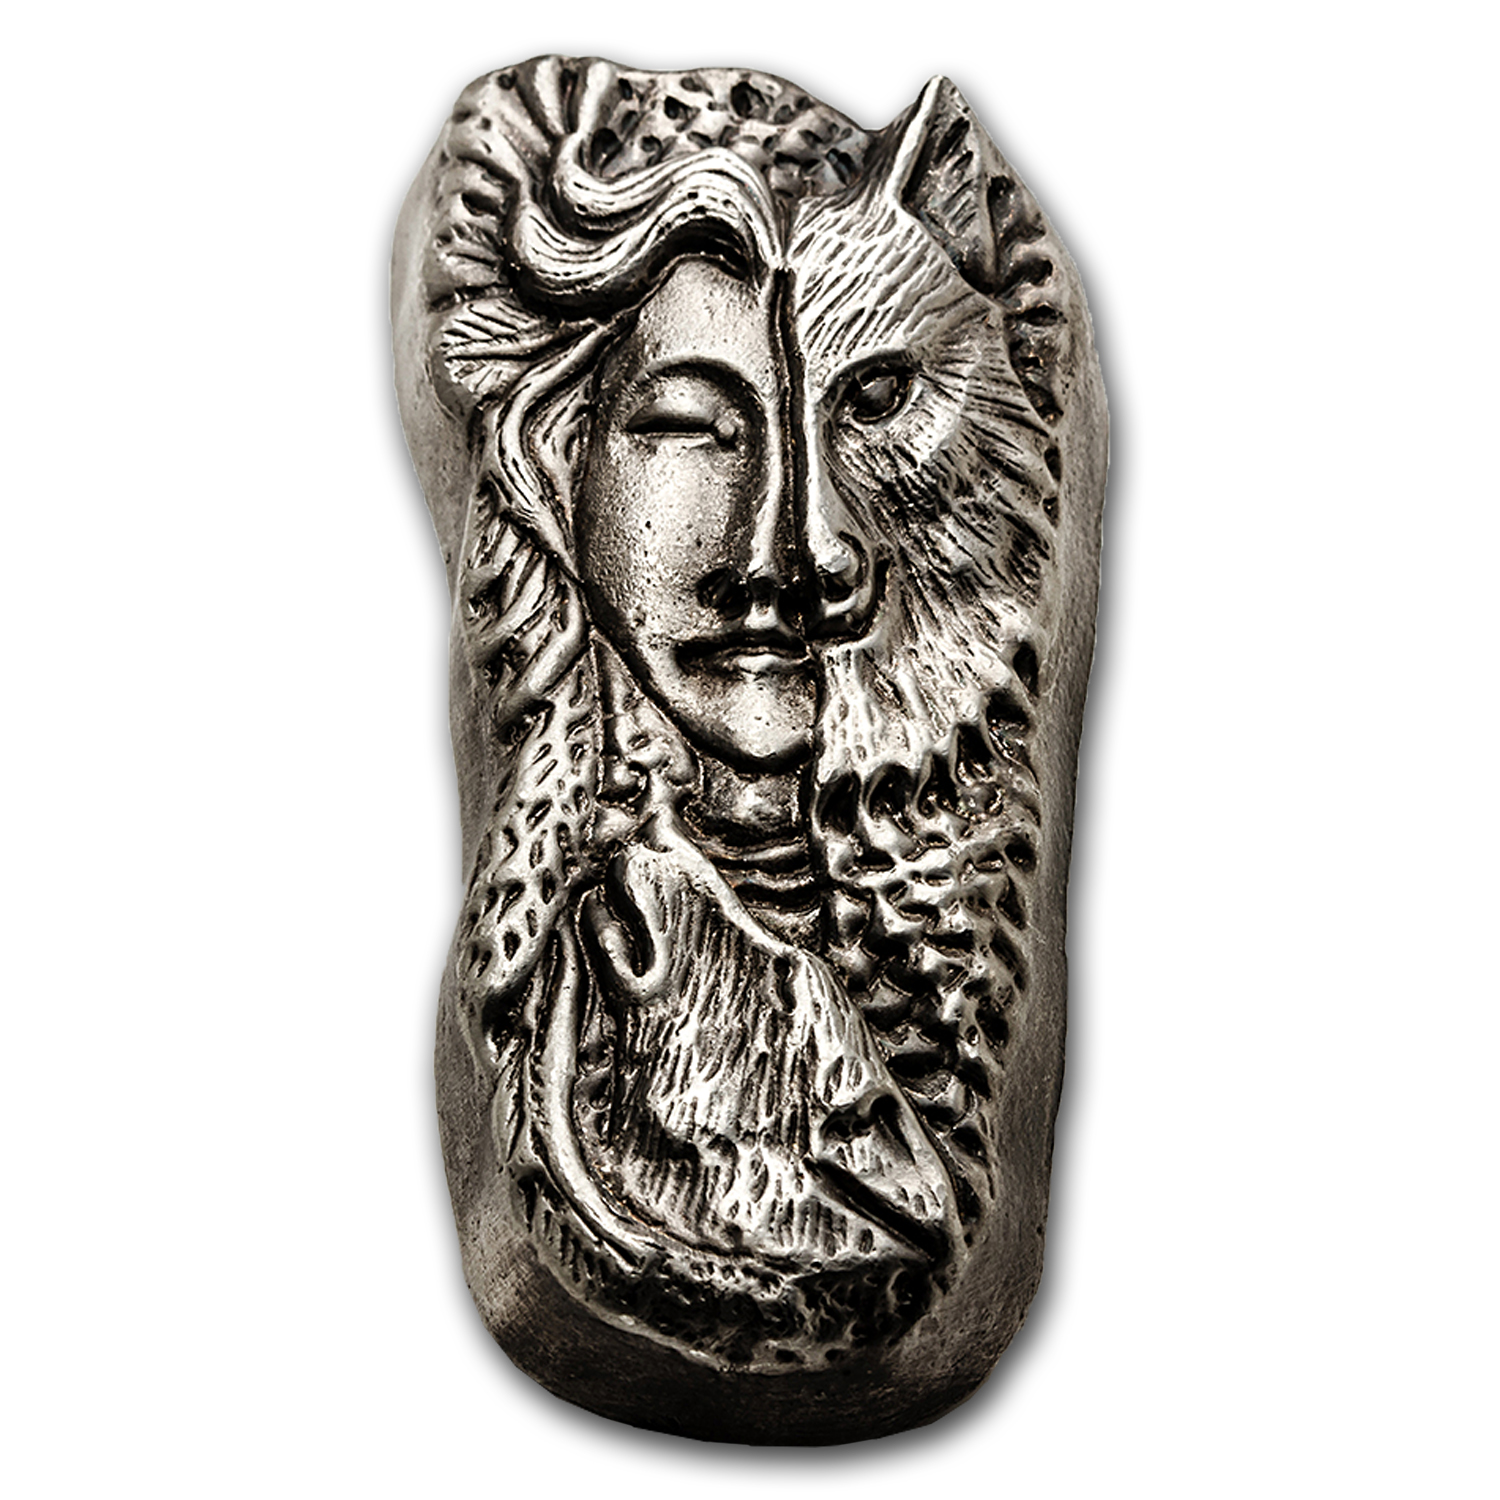 7 oz Silver Bar - Bison Bullion (Wolf Woman)